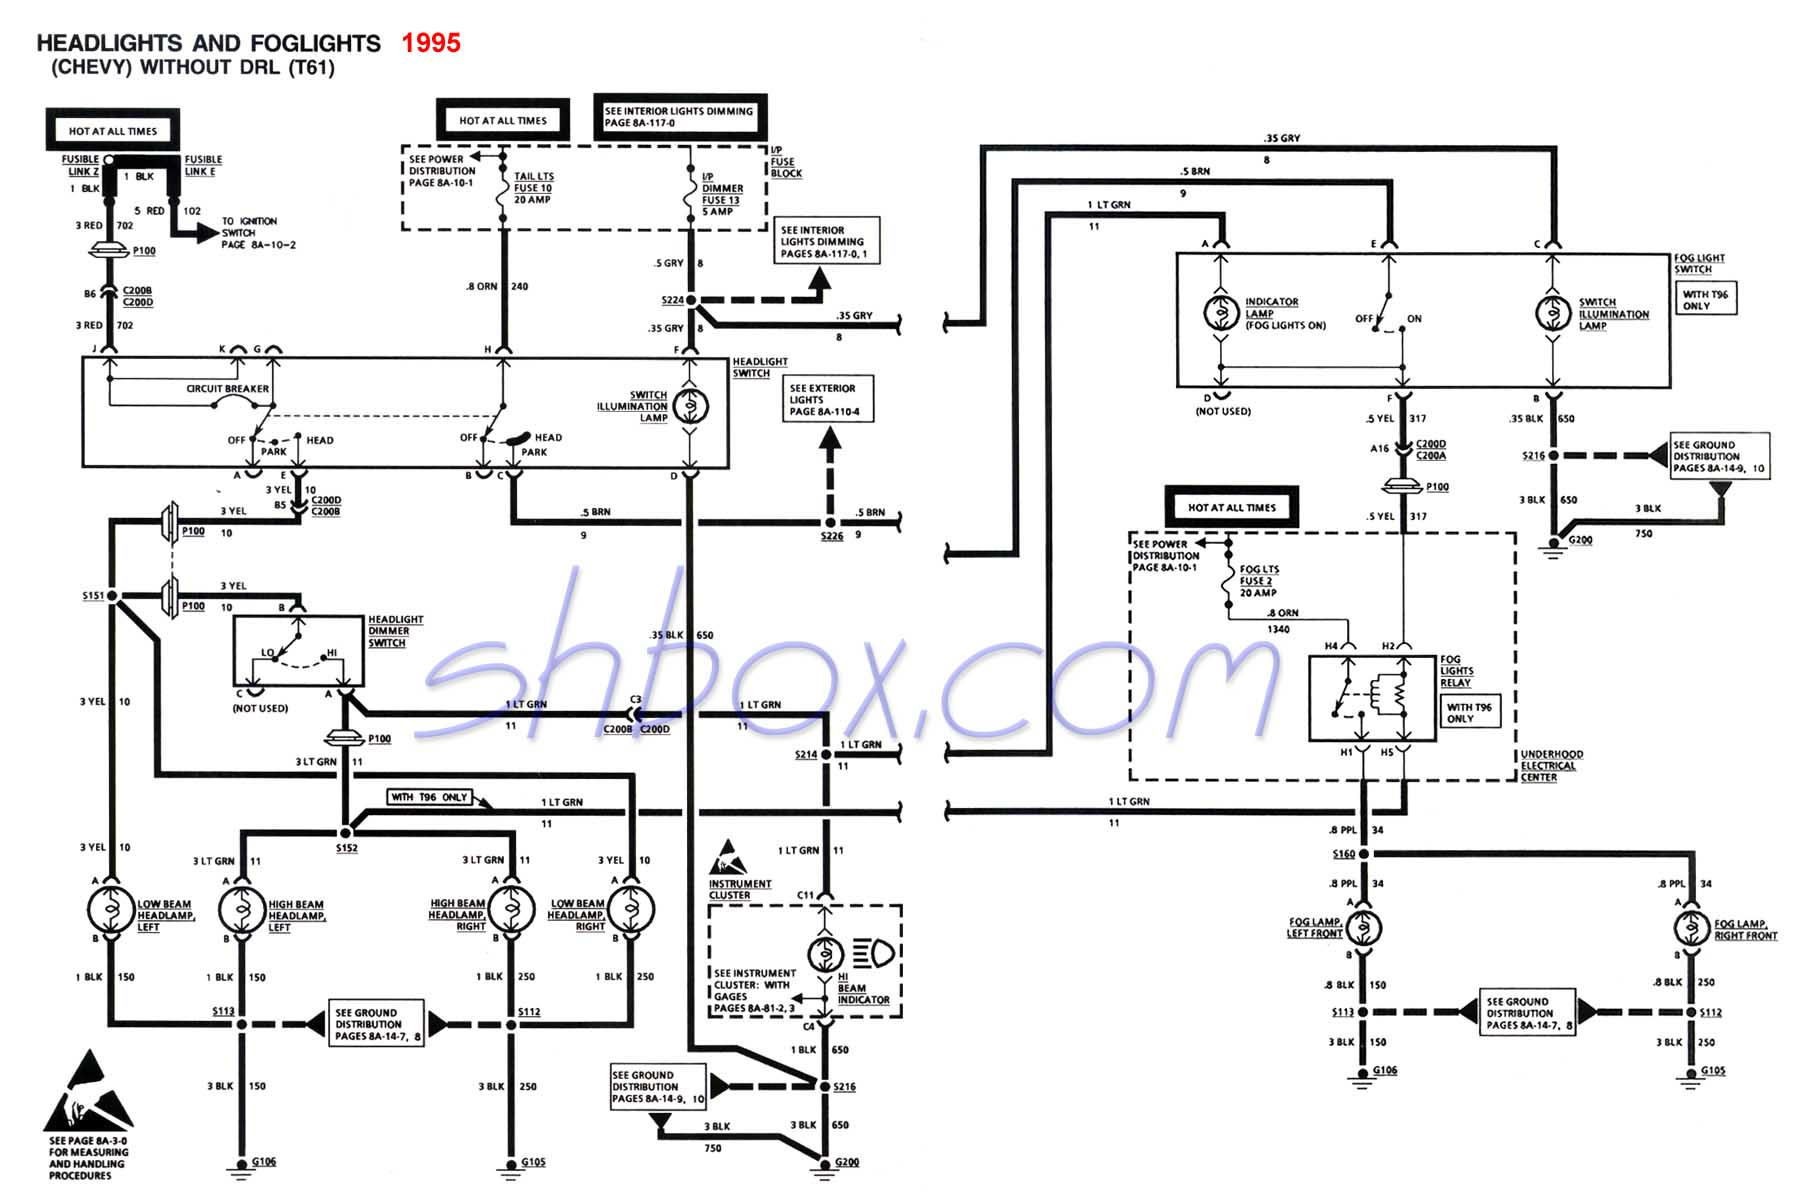 2002 camaro wiring diagram wiring diagram rh blaknwyt co 2014 camaro wiring diagram 2015 camaro ss wiring diagram